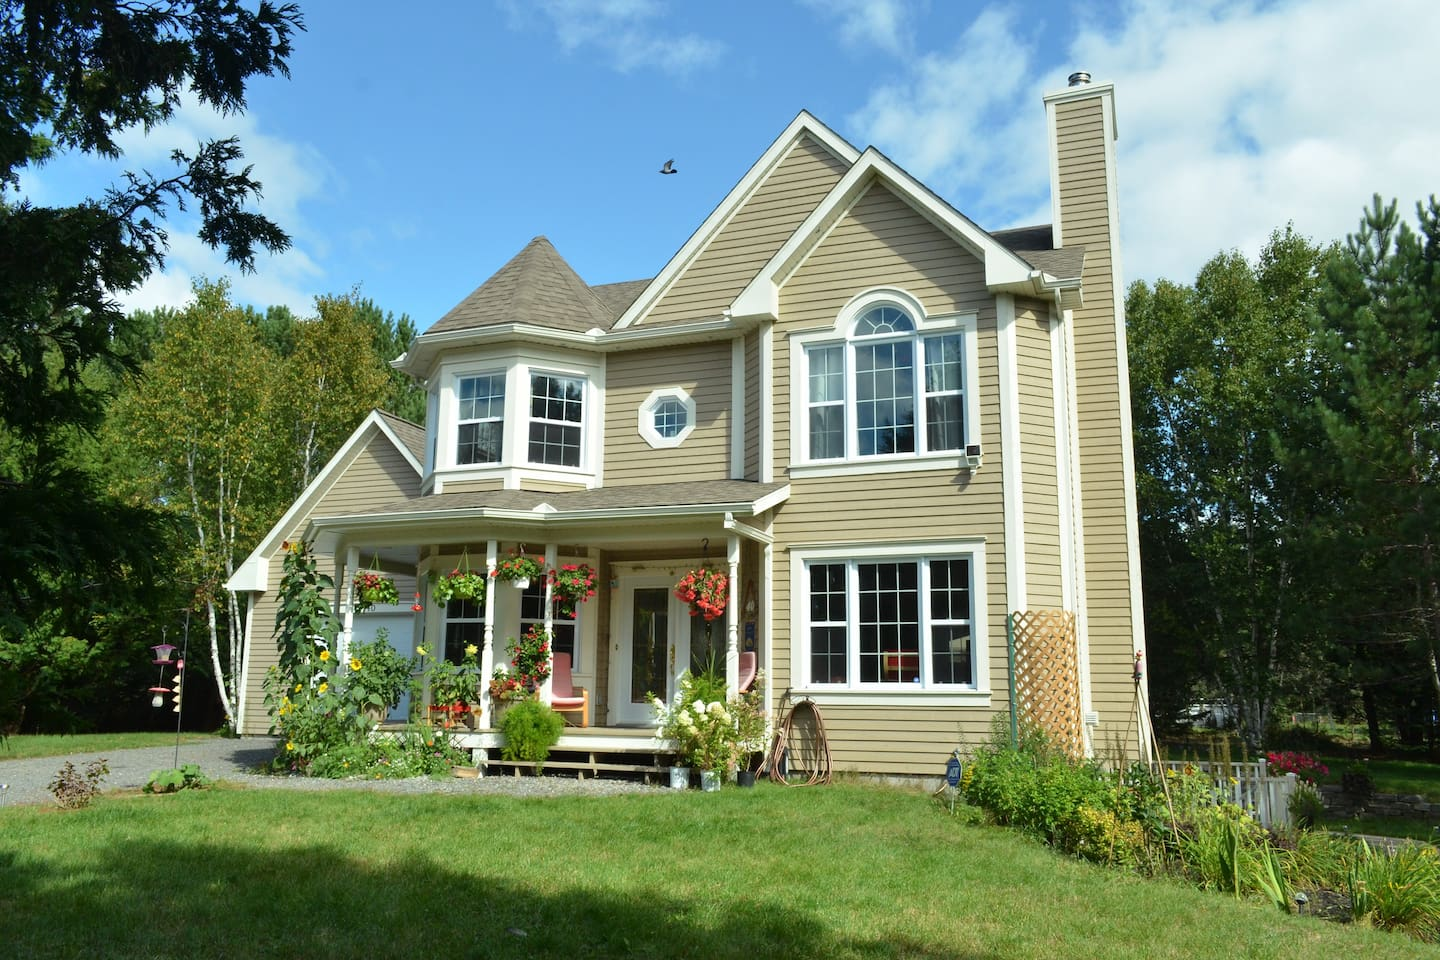 Family Villa, Up to 9 Guests, Close to Bike Trail and Down town Mont Tremblant and Village.